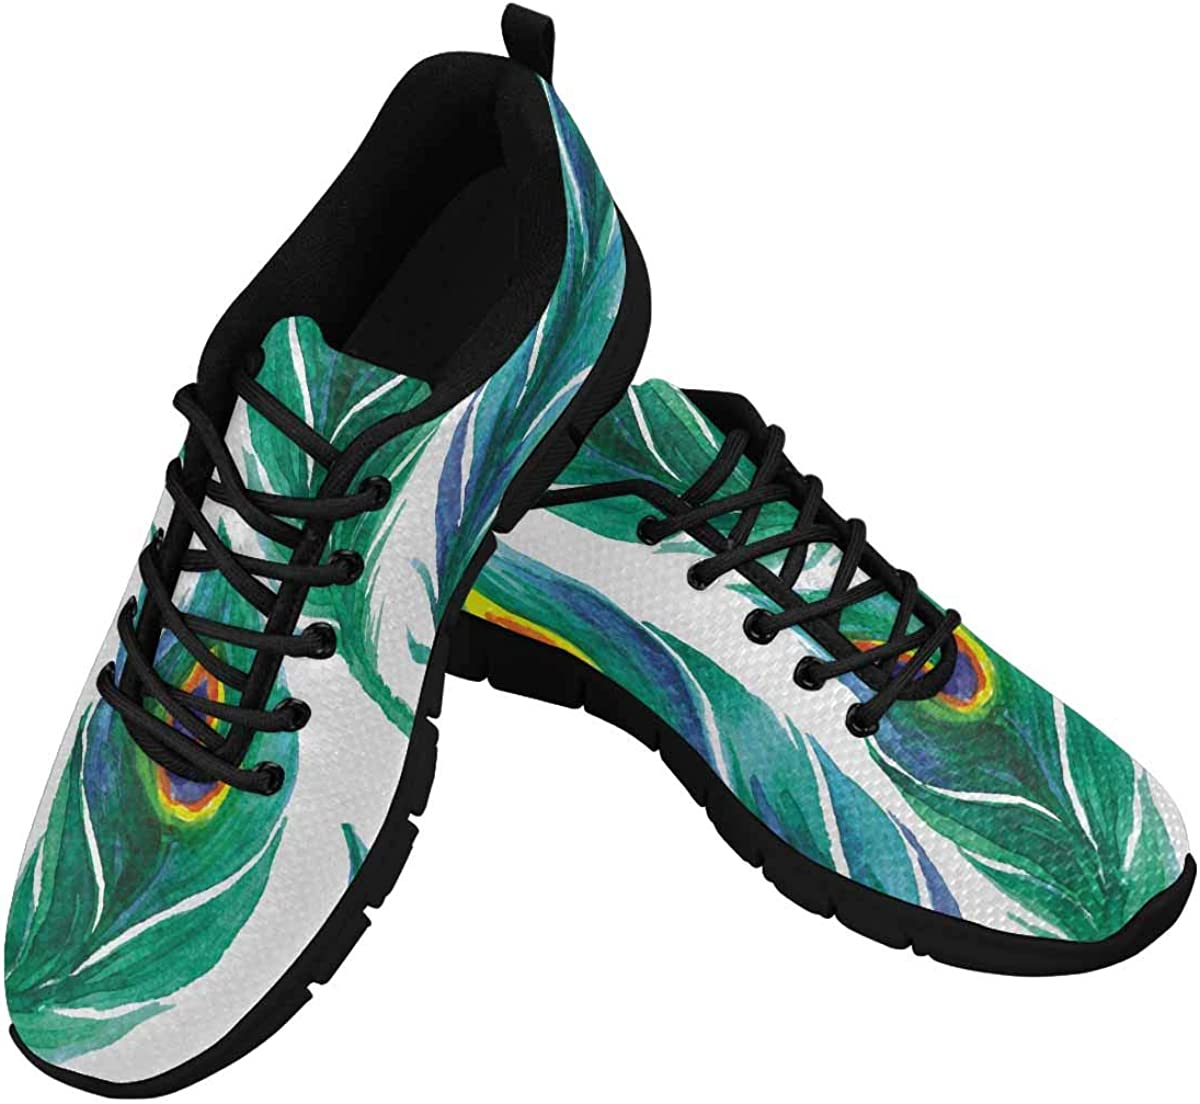 INTERESTPRINT Peacock Feather Women's Lightweight Athletic Casual Gym Sneakers